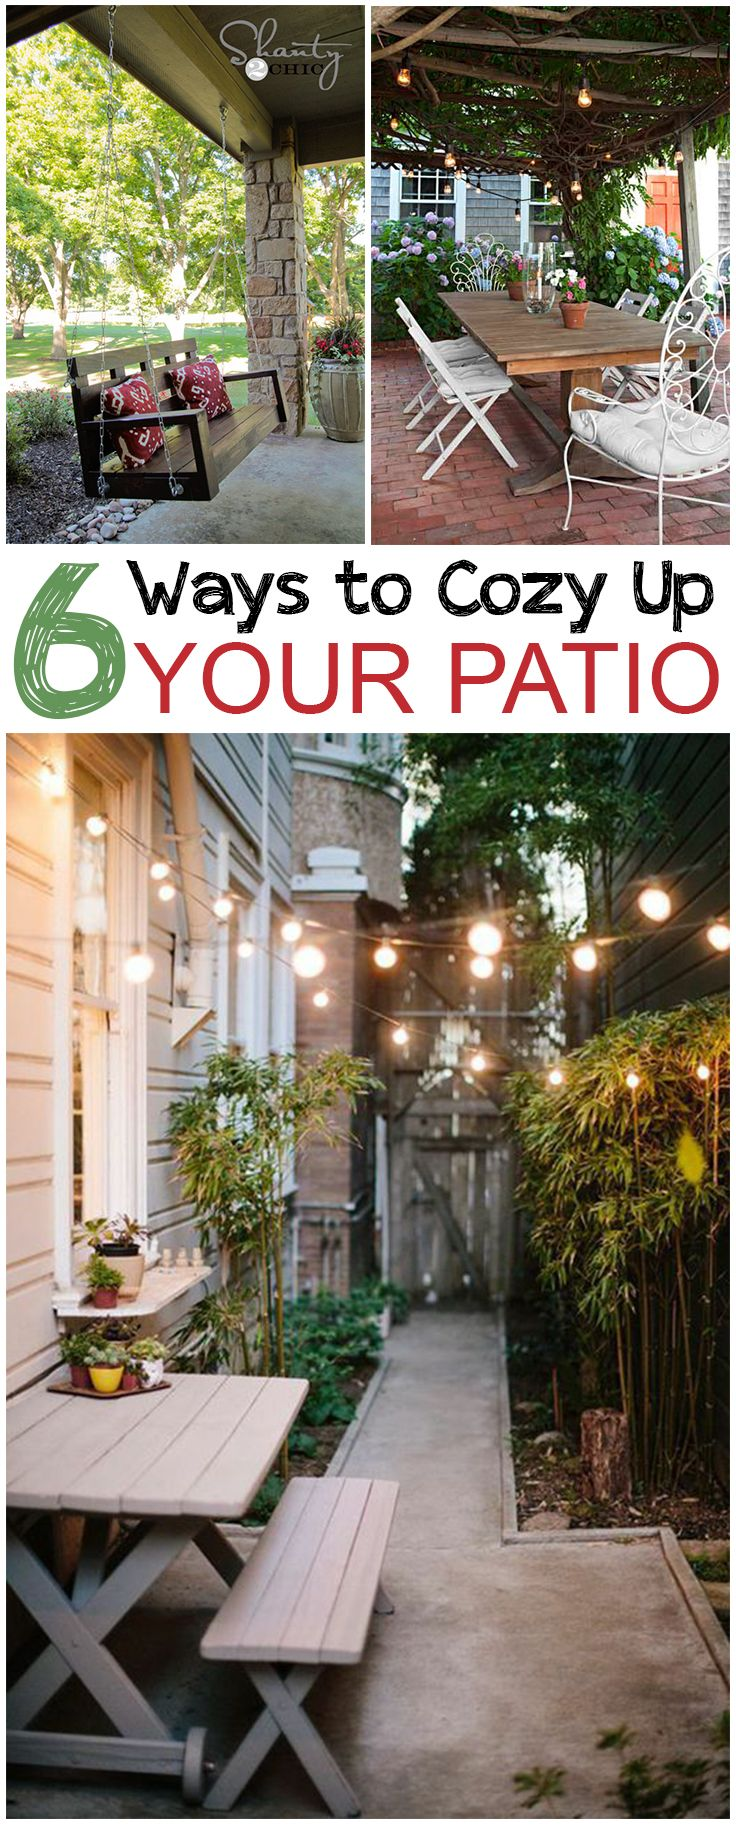 6 Ways to Cozy up Your Patio- Great ideas for making a warm and welcoming backyard patio.